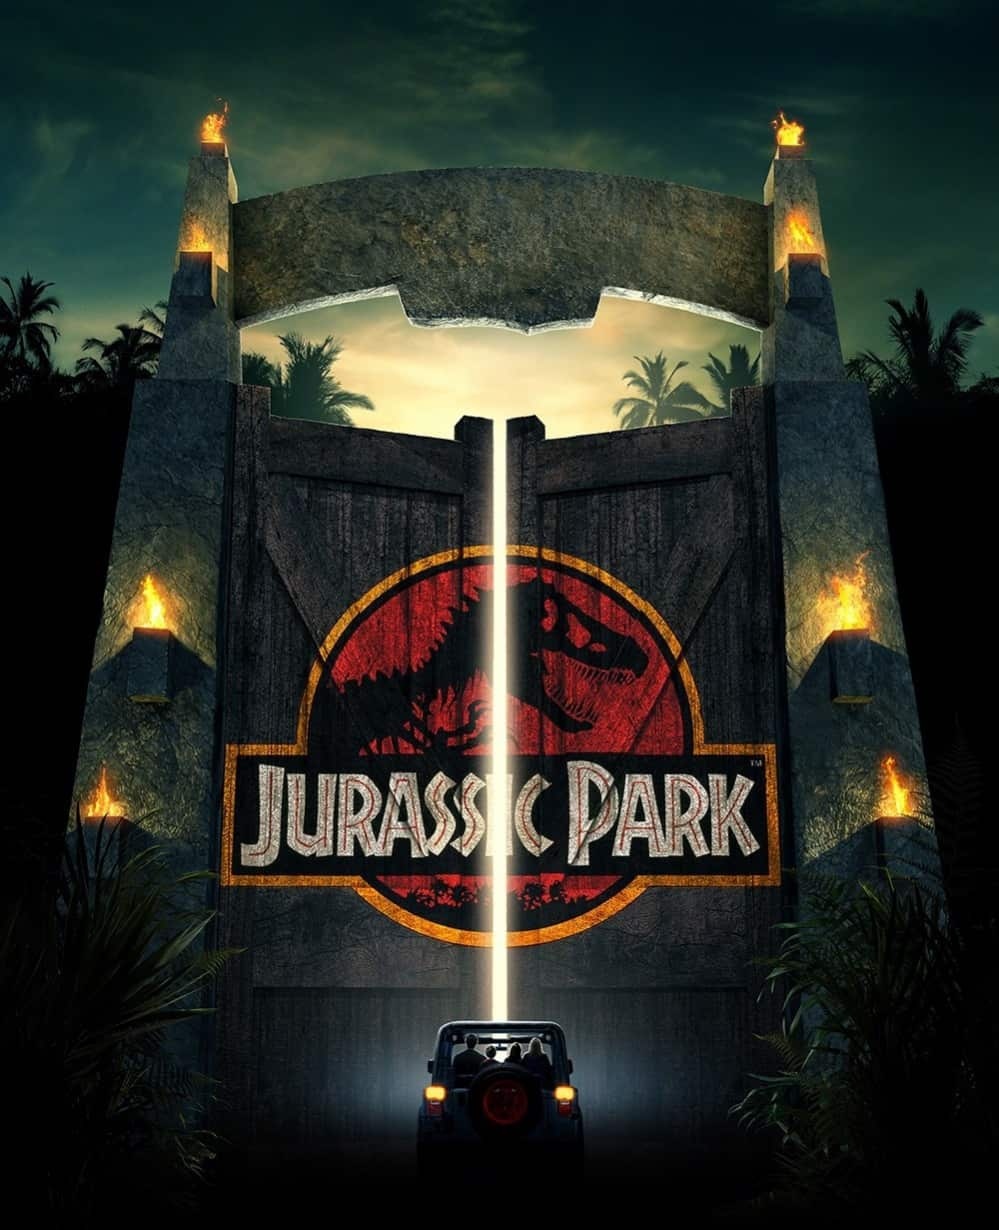 Jurassic Park Re-Release